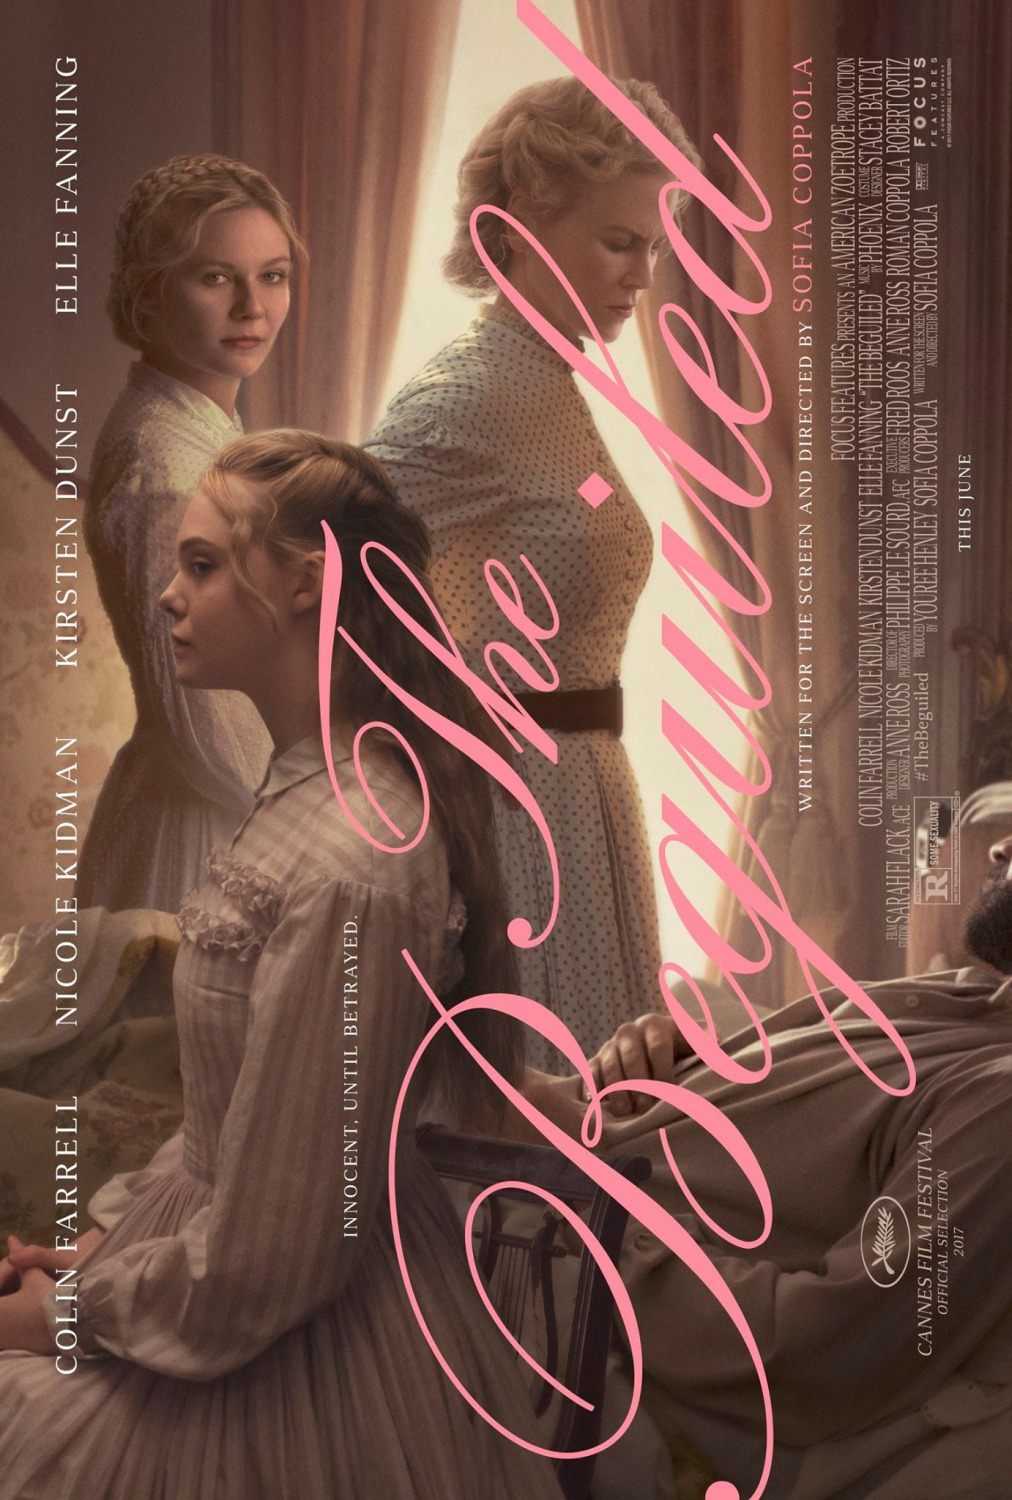 The Beguiled 2017 poster